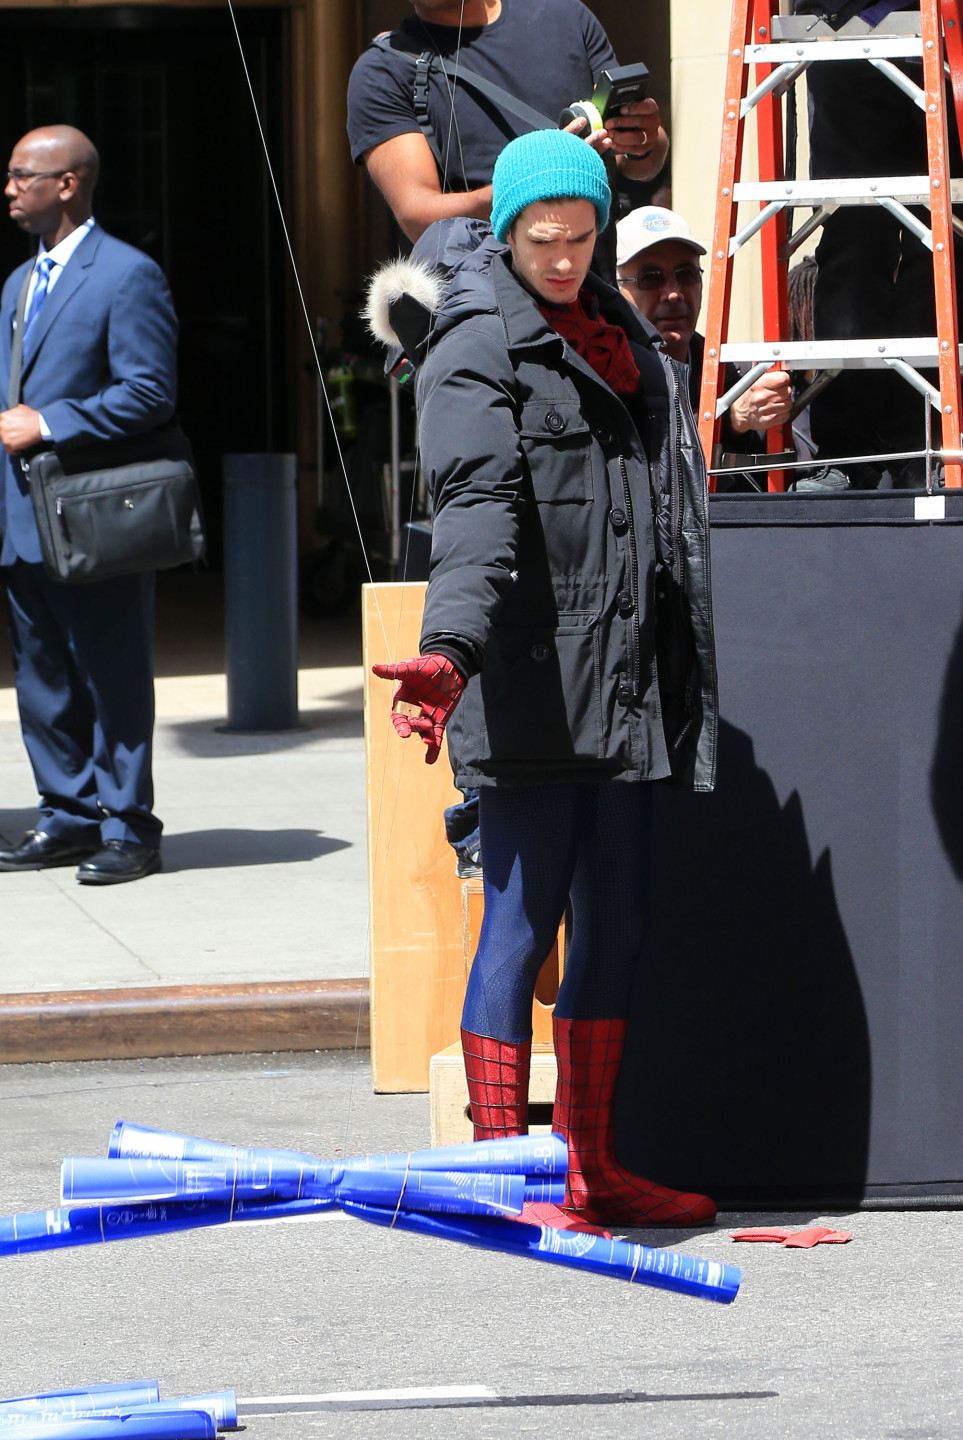 Andrew Garfield and Jamie Foxx on location for 'The Amazing Spider-Man 2' in NYC